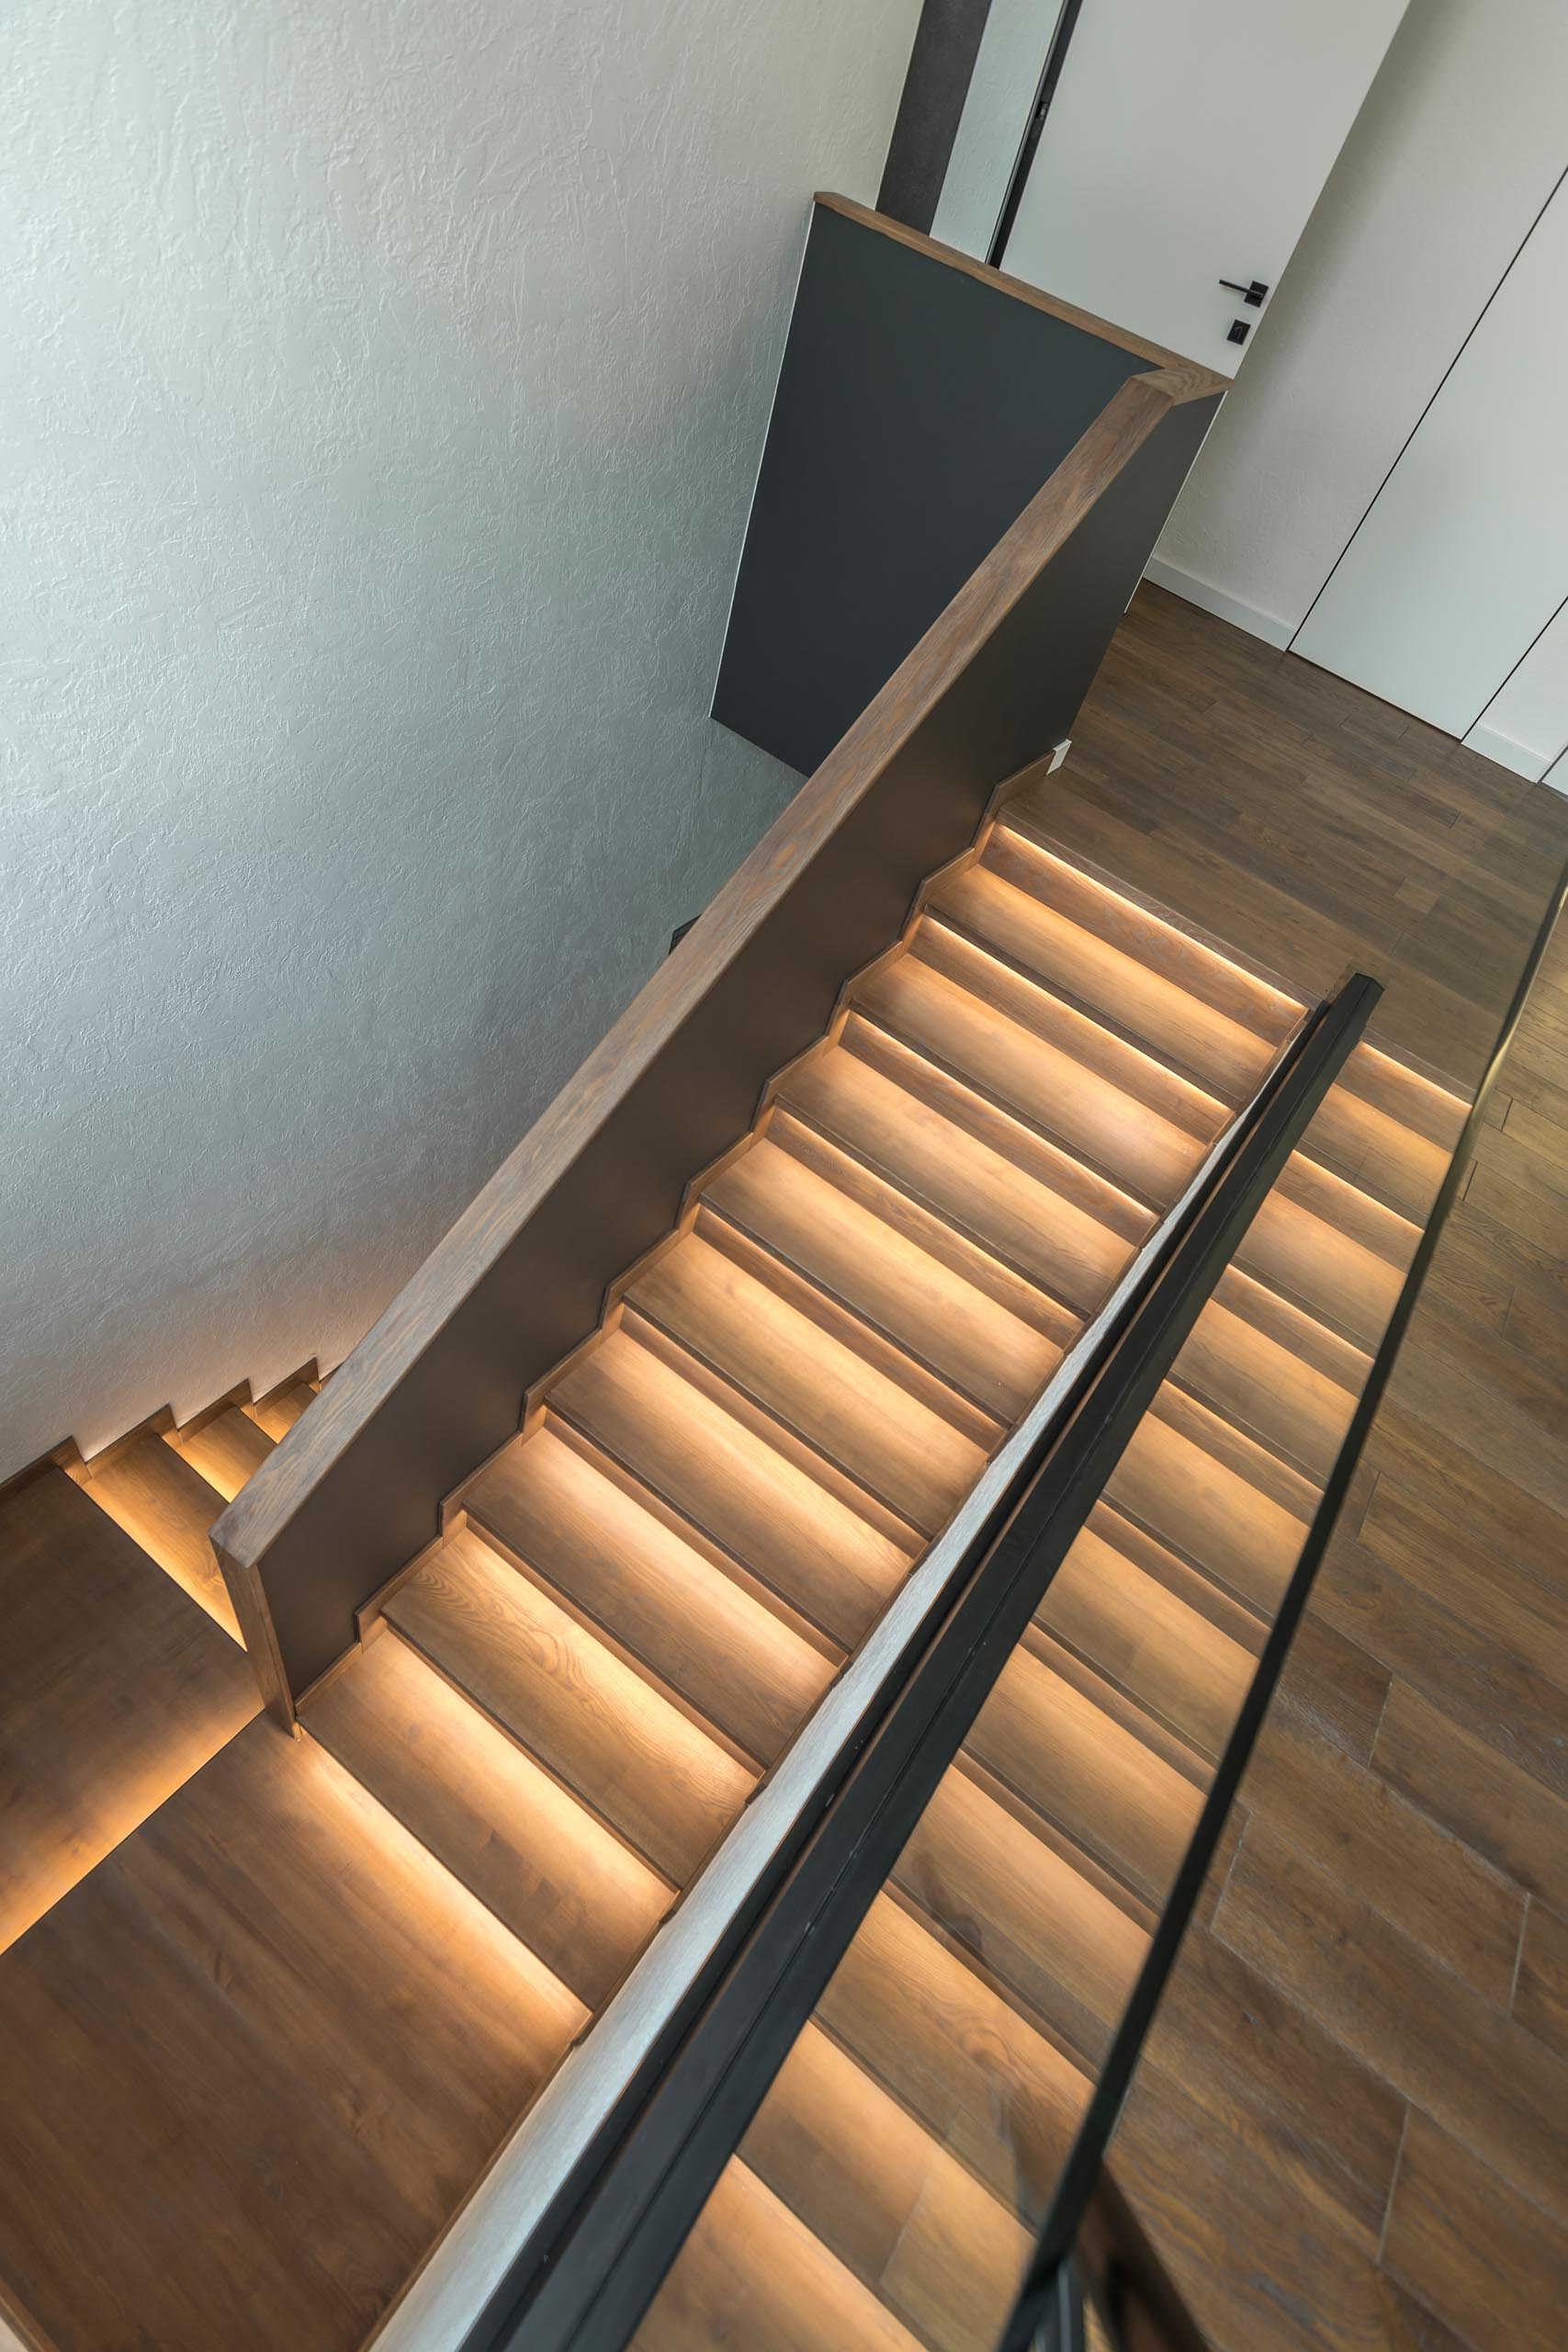 Wood stairs with hidden lighting.